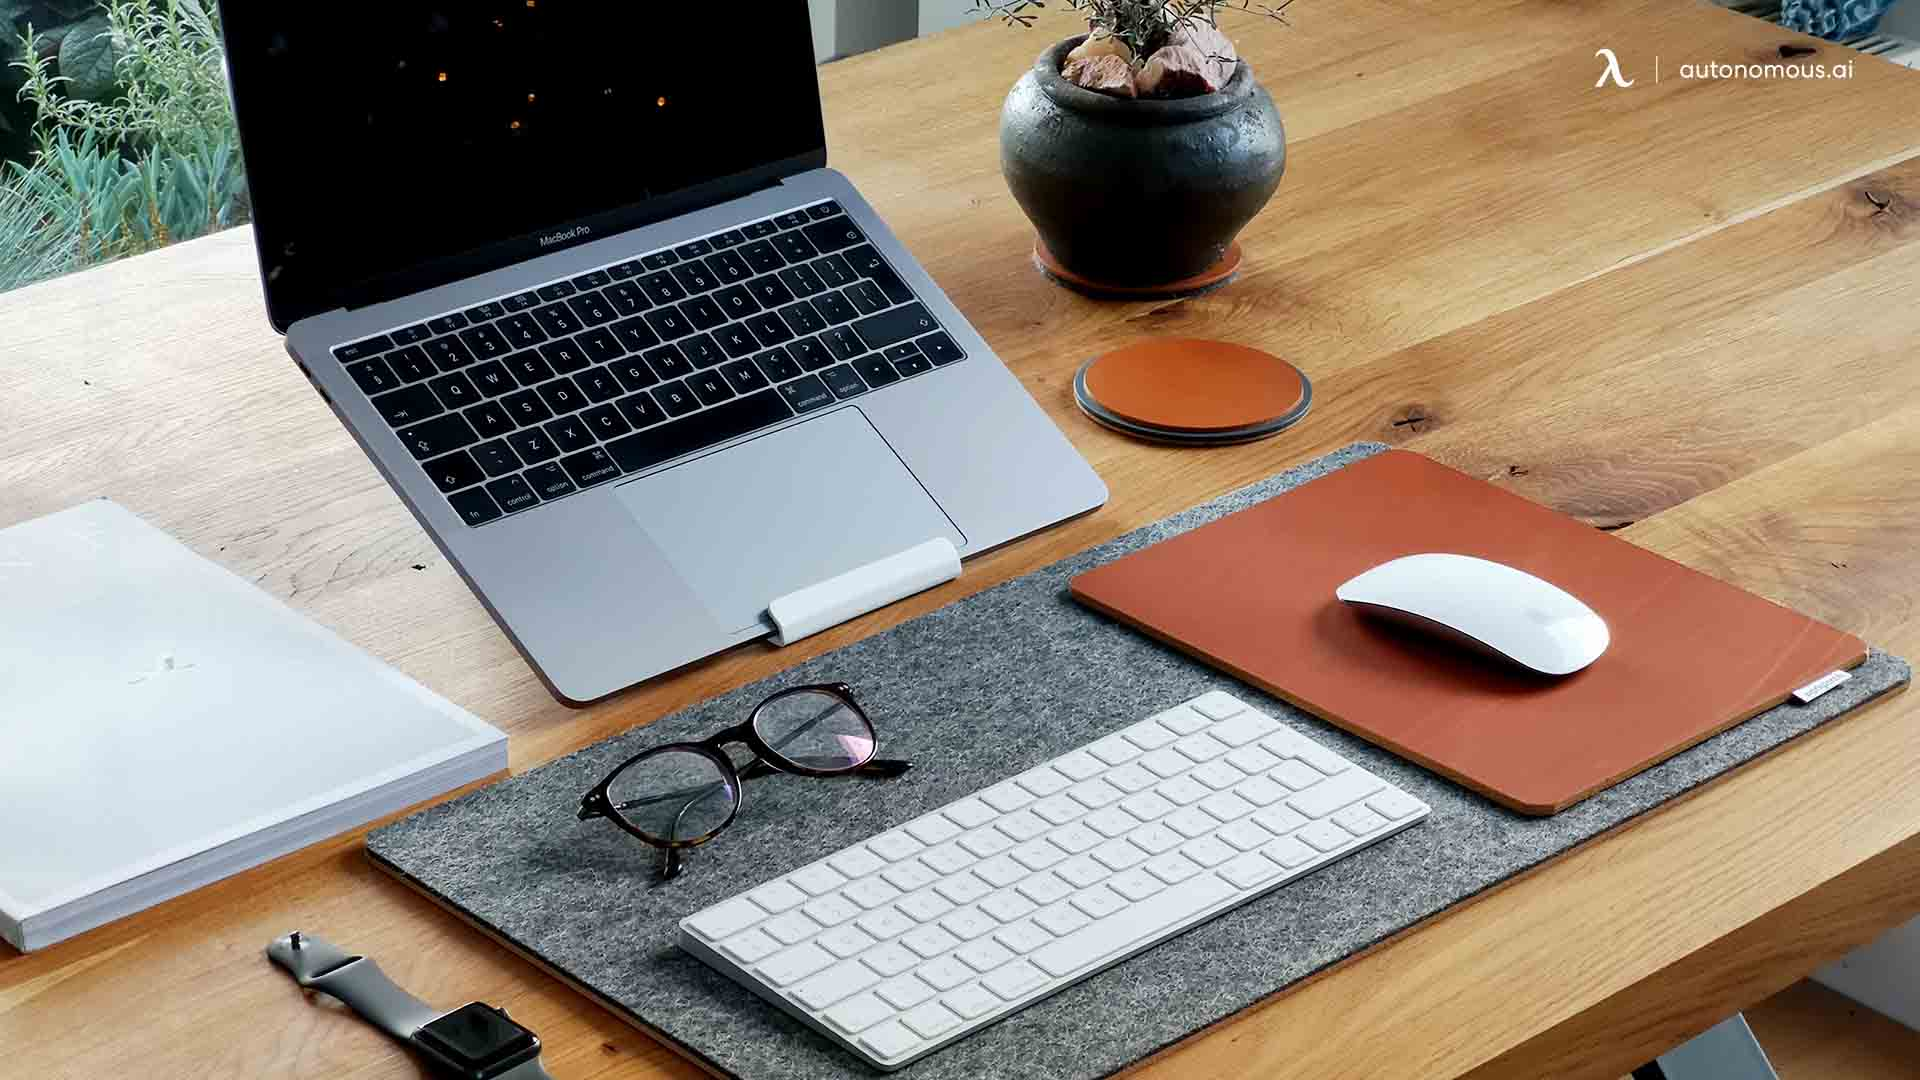 The Best Ergonomic Laptop Setup Guide for Office Workers